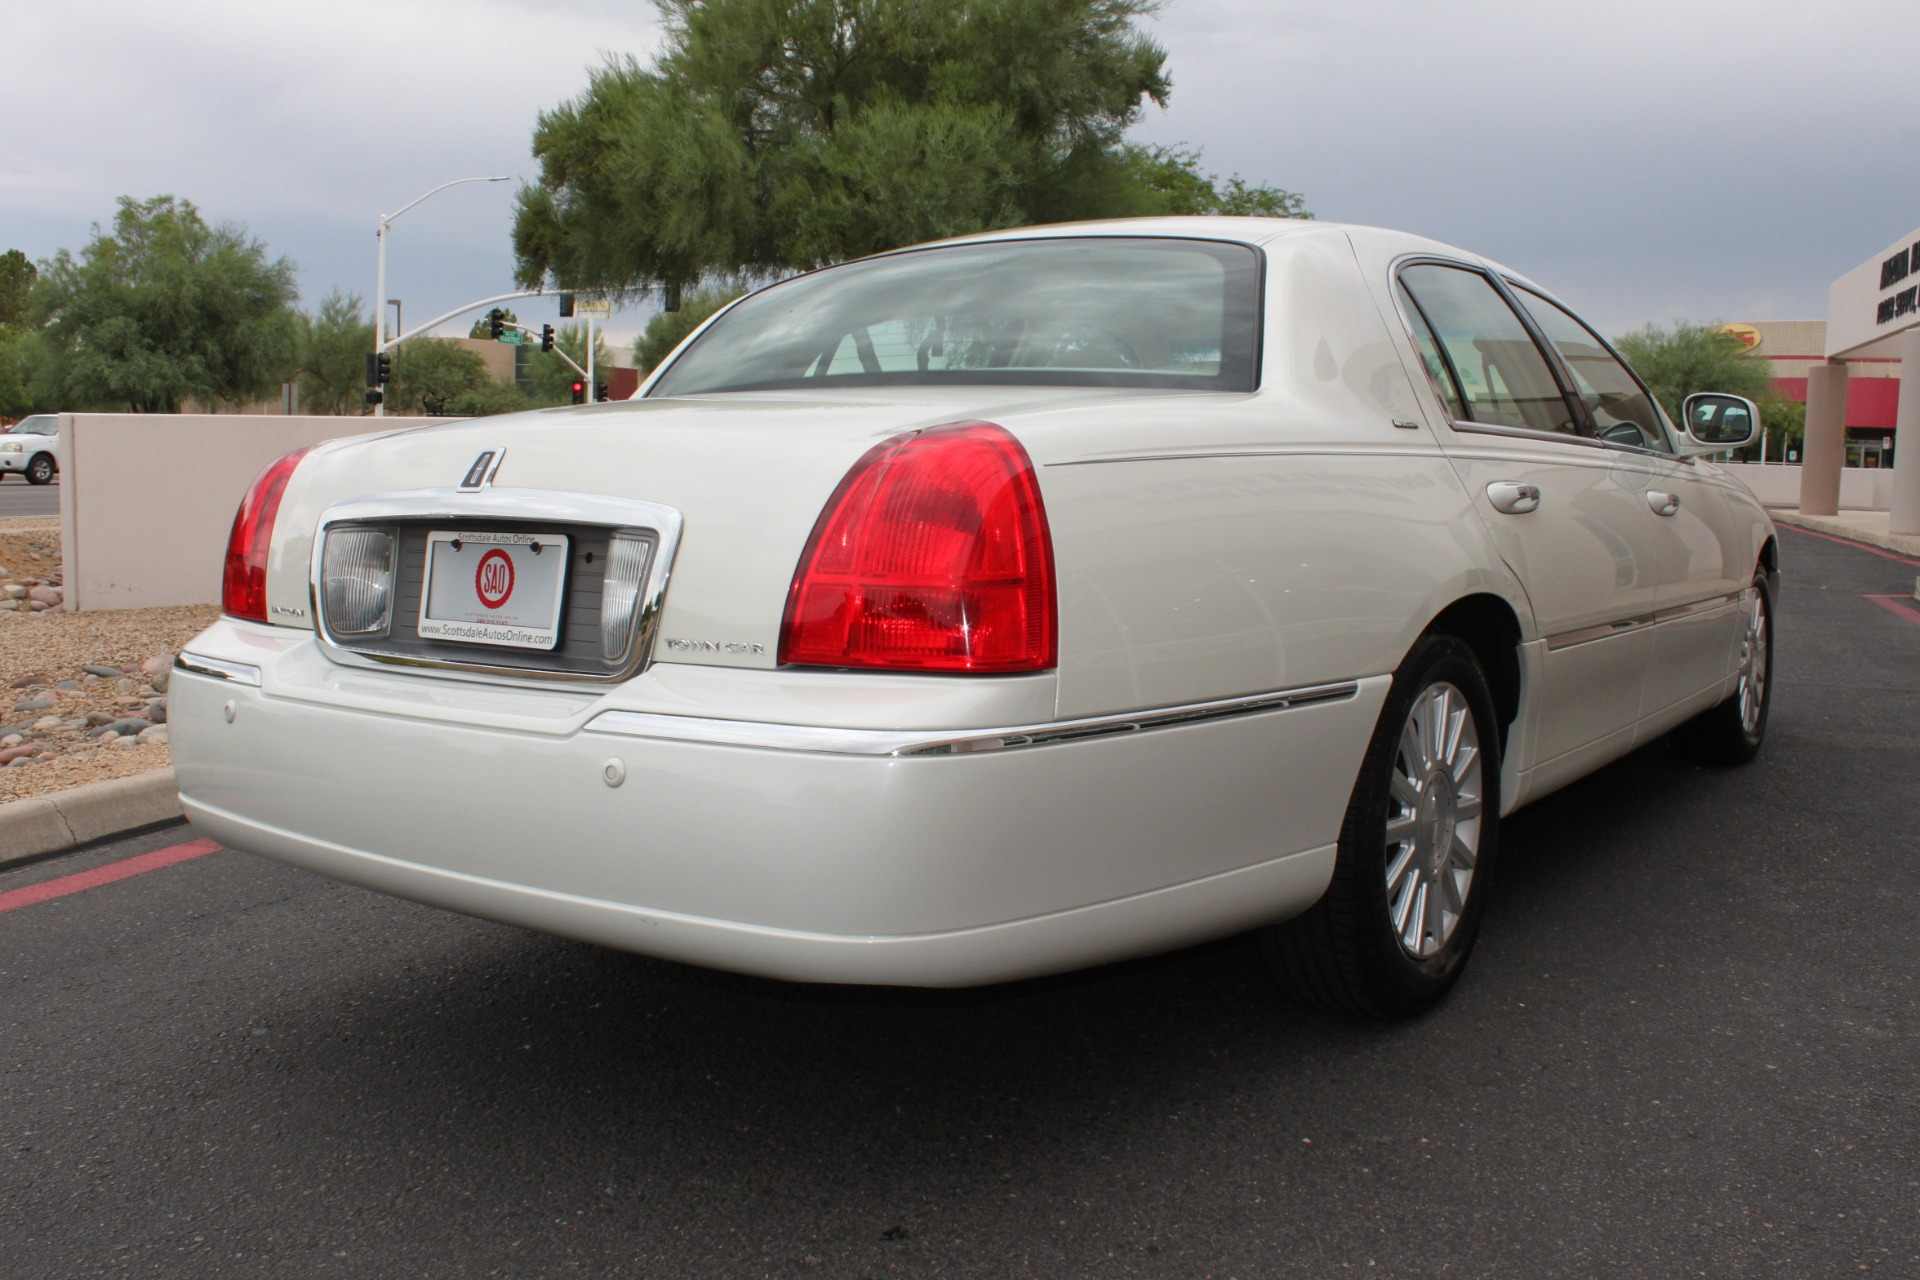 Used-2004-Lincoln-Town-Car-Ultimate-Chrysler